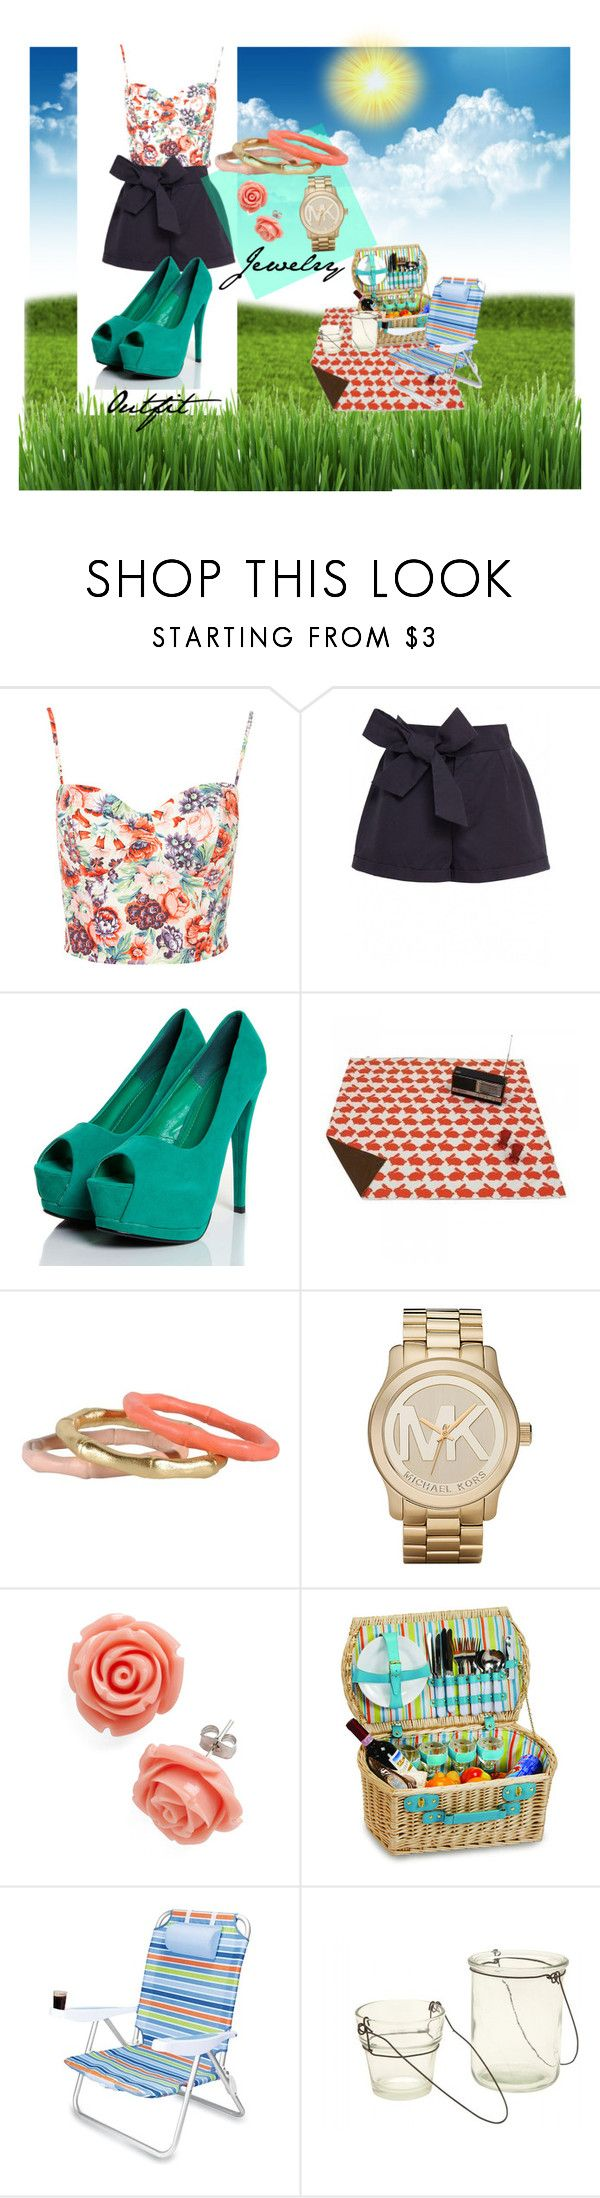 """Picnic date outfit"" by melgg ❤ liked on Polyvore featuring Twenty8Twelve, Natalia Brilli, Michael Kors, Jayson Home, high waisted shorts, romantic, high heels, watch, arm candy and floral corset"